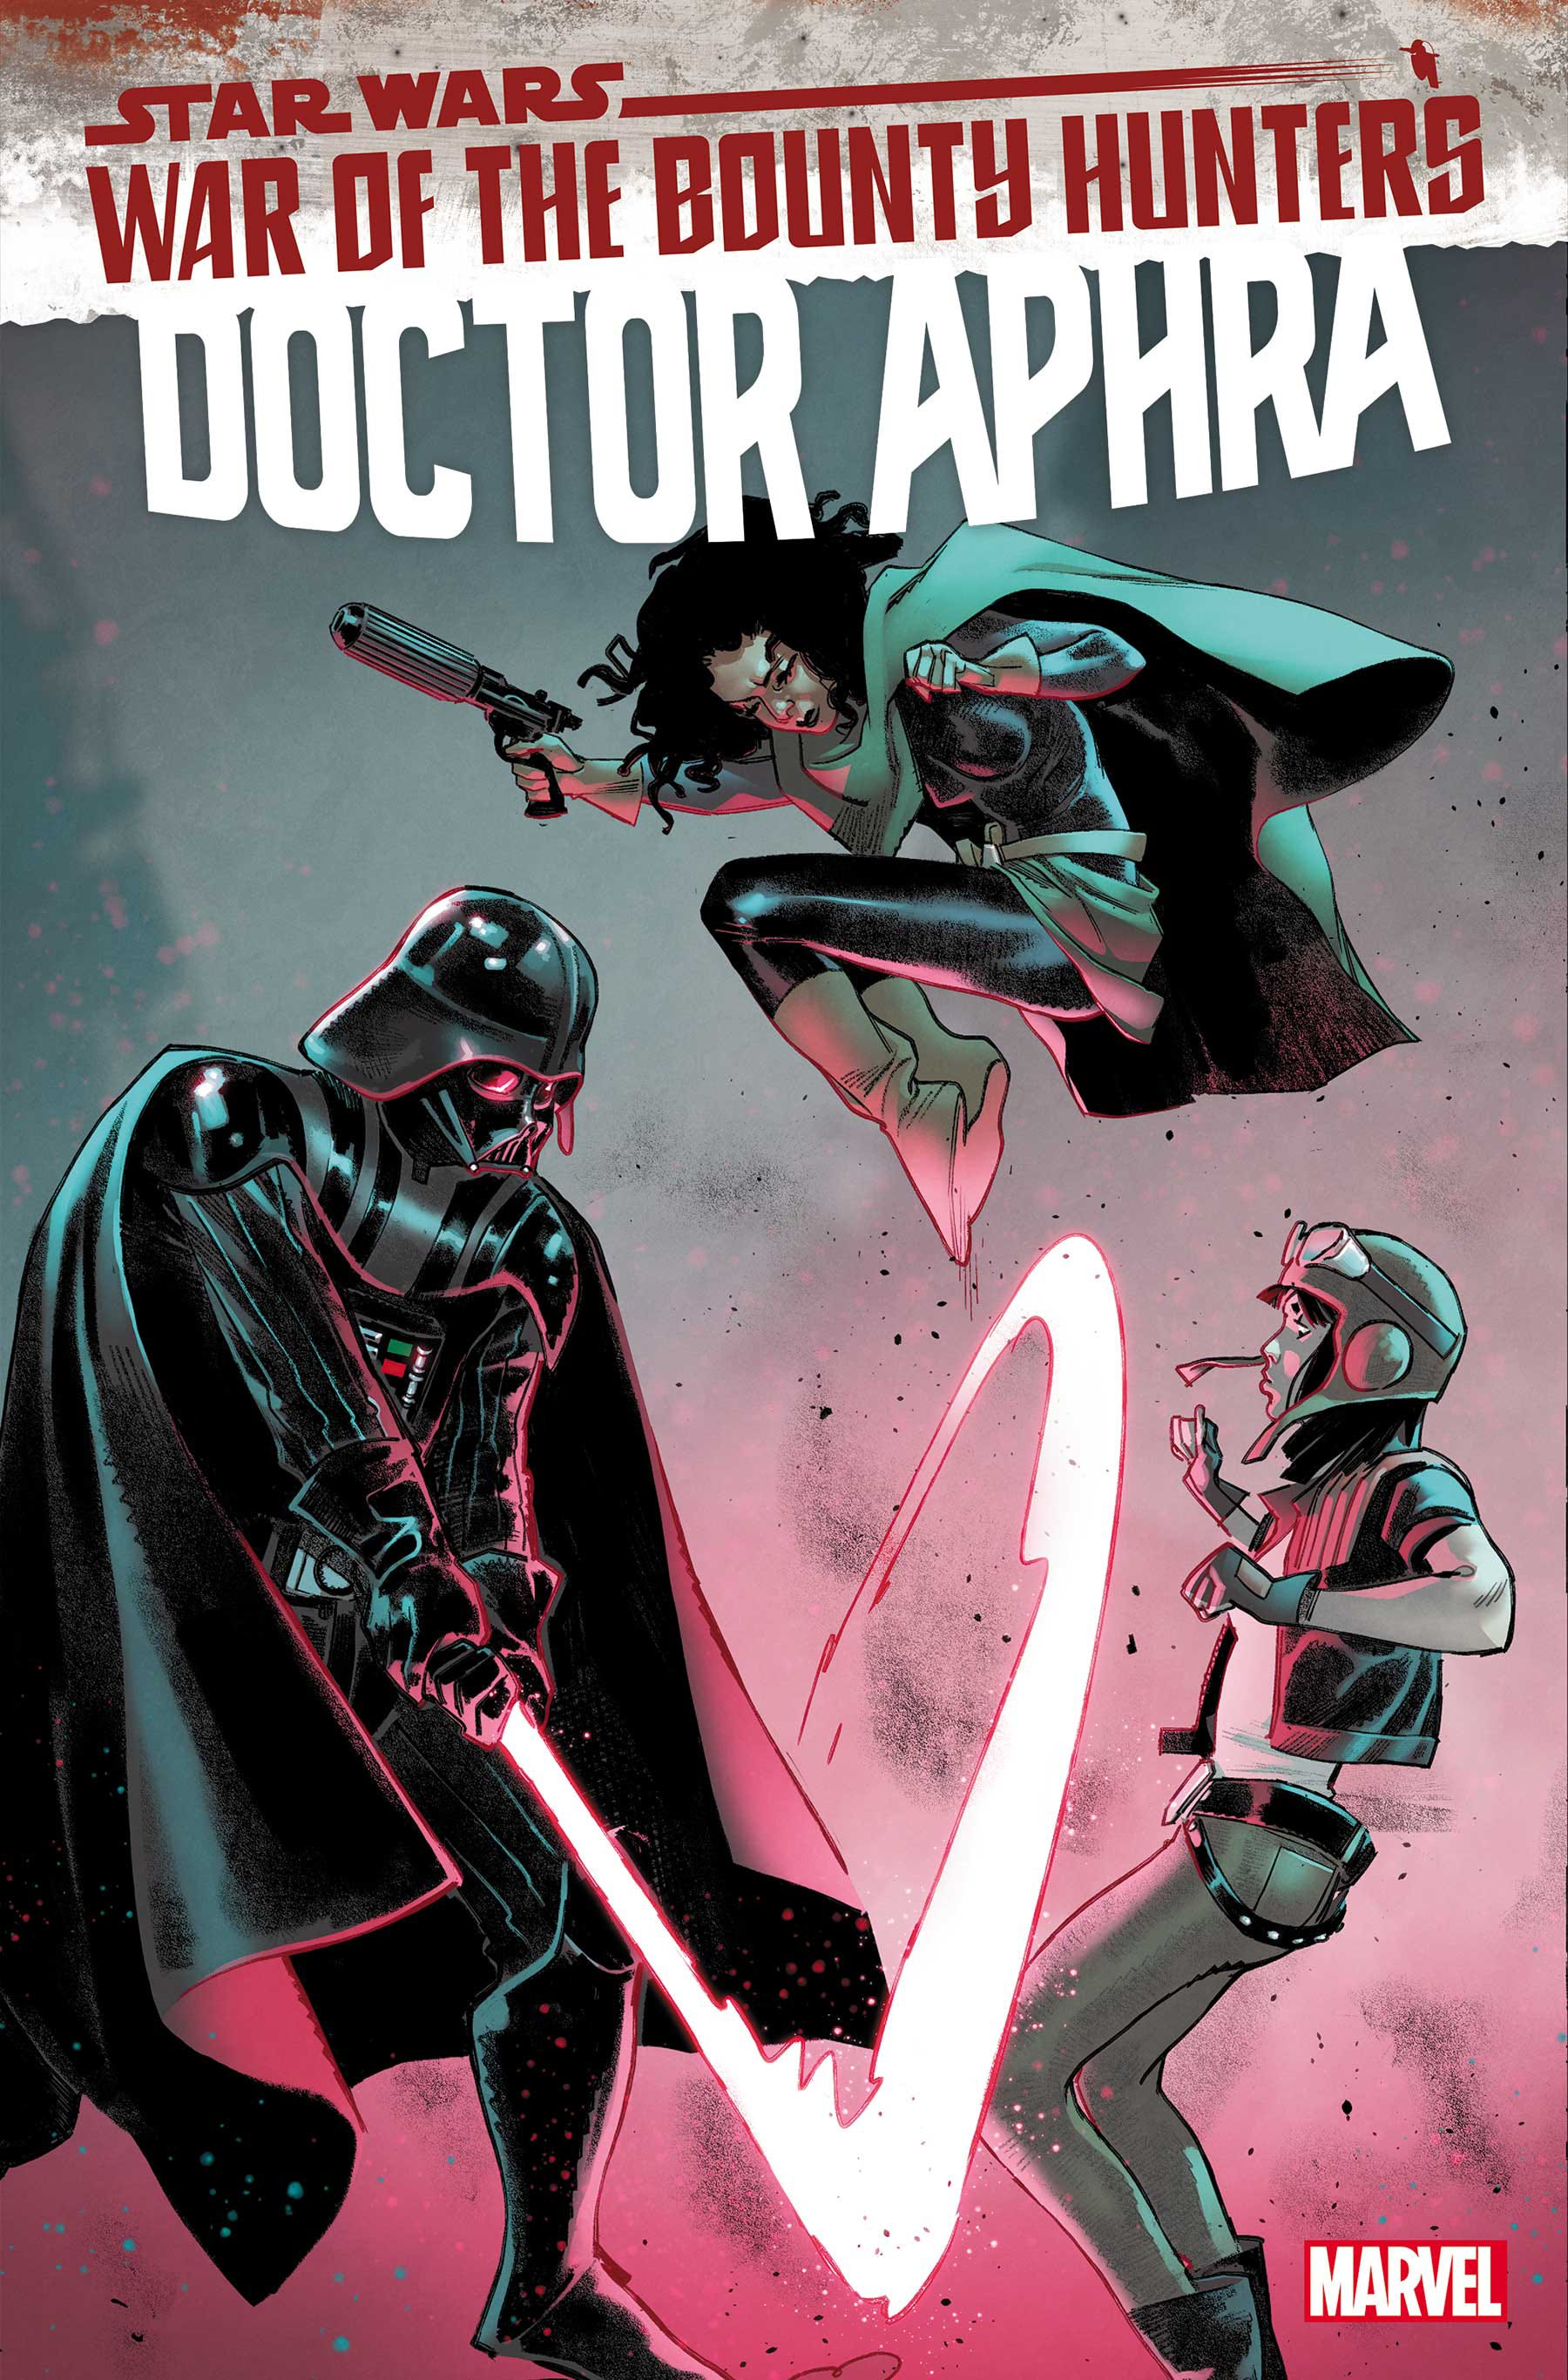 Star Wars Doctor Aphra #13 (War of the Bounty Hunters)